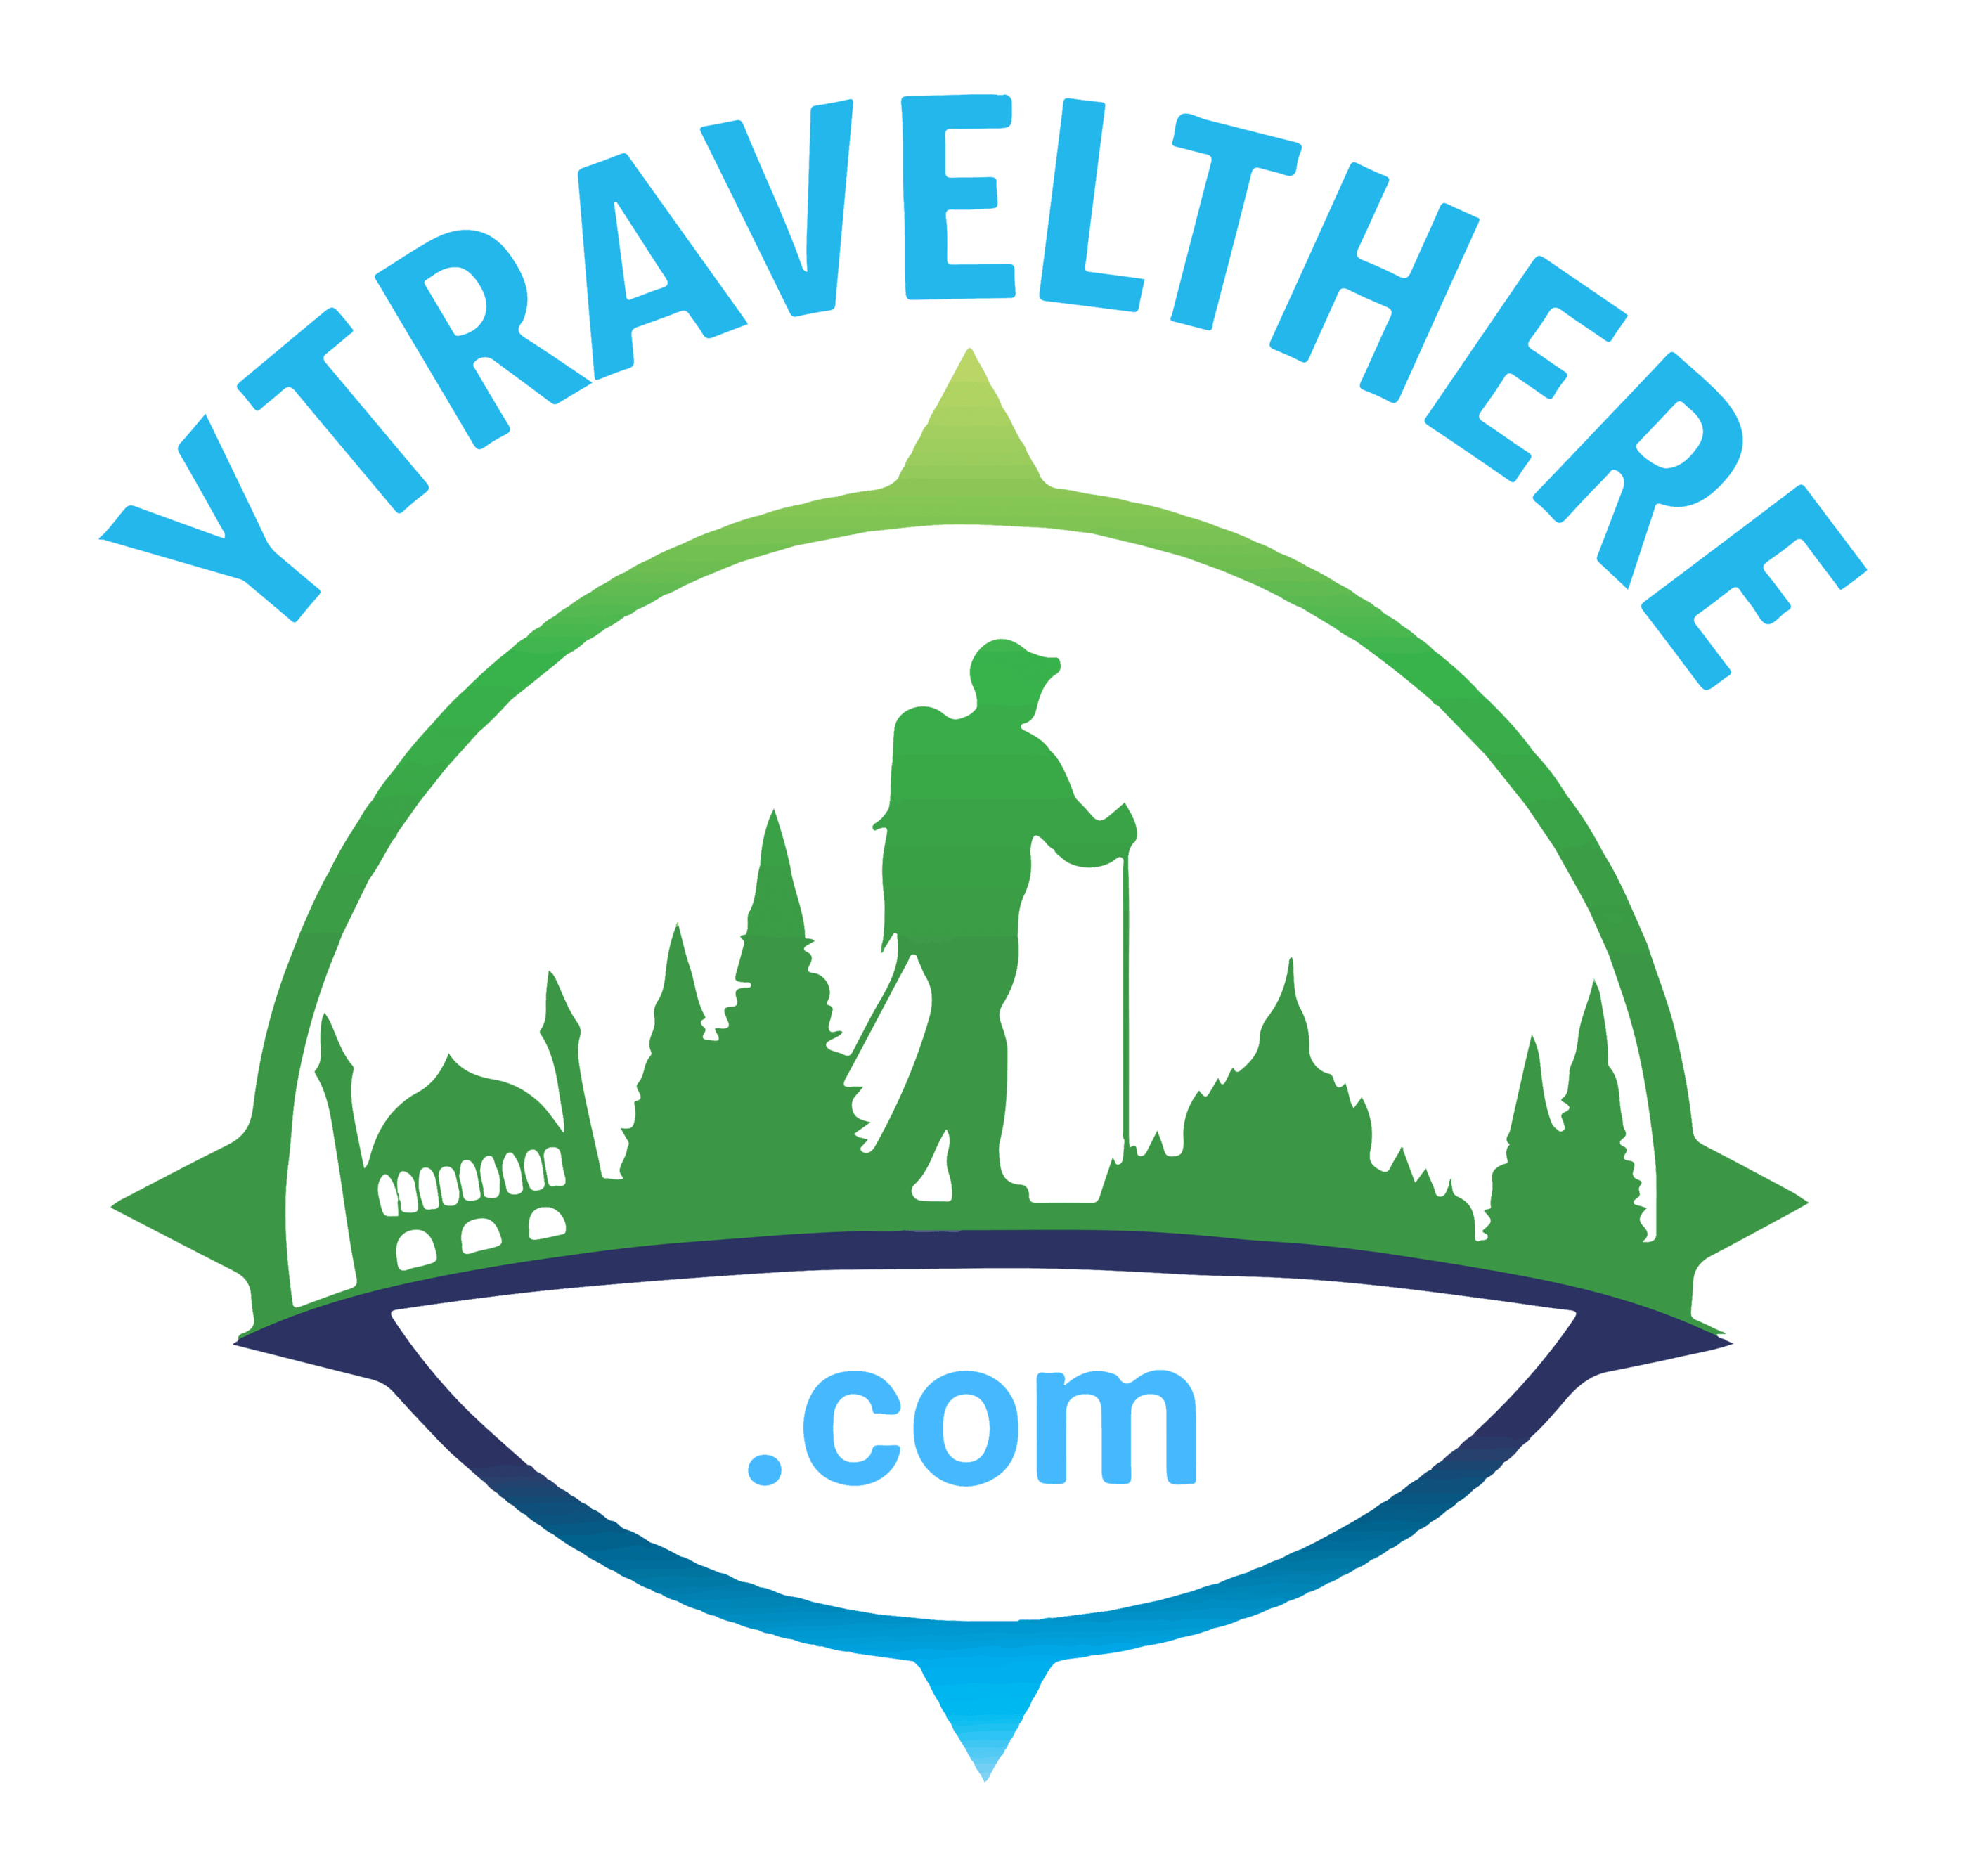 ytravelthere